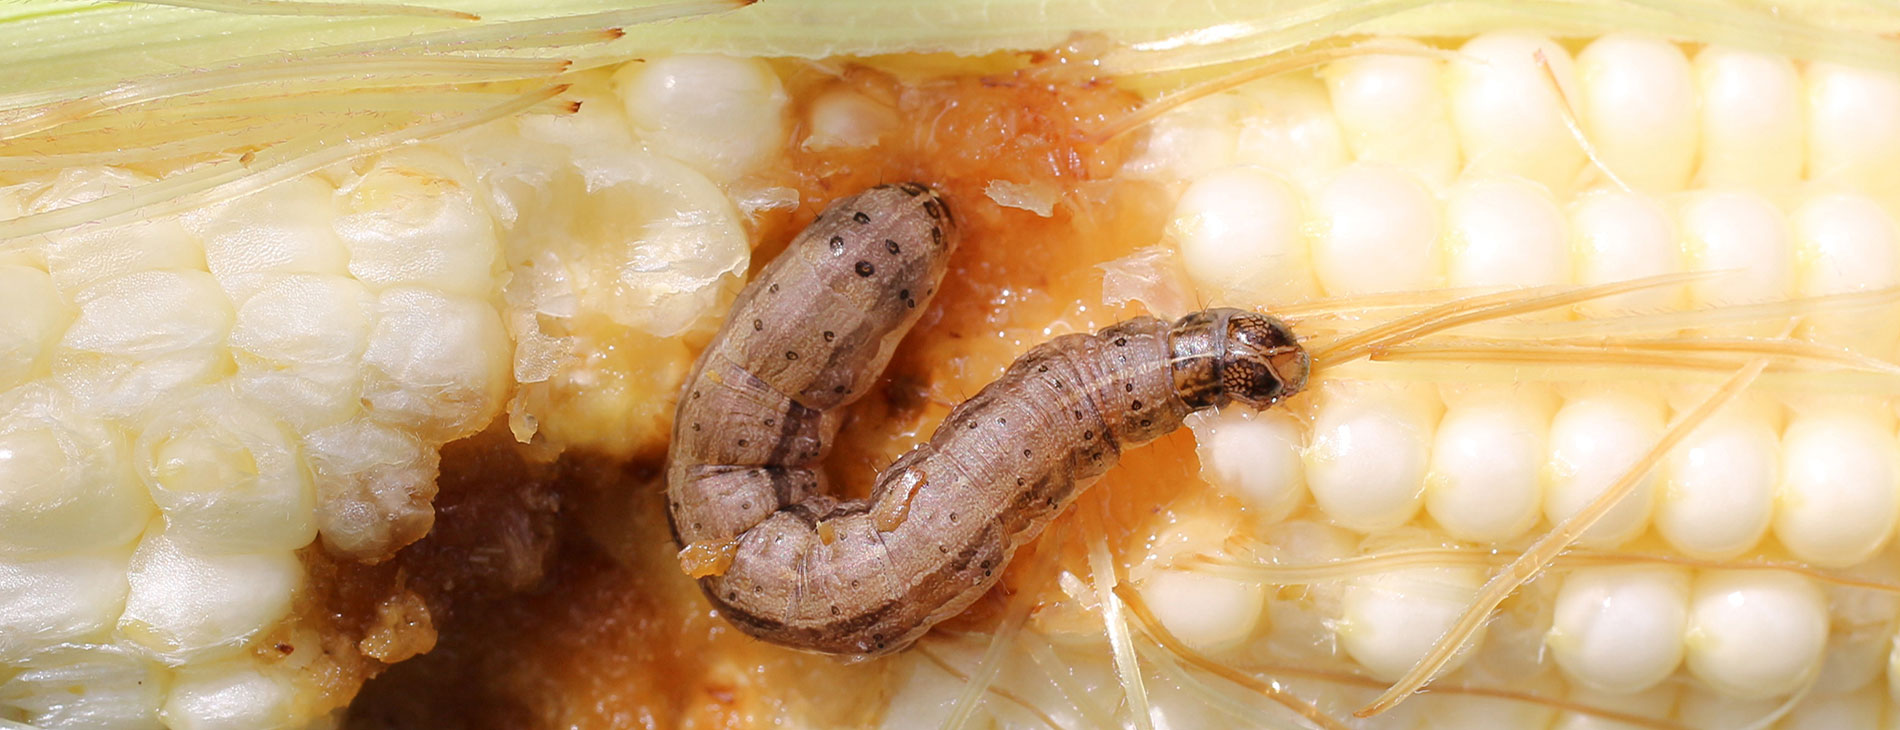 Fall Armyworm Has Reached The Indian Subcontinent